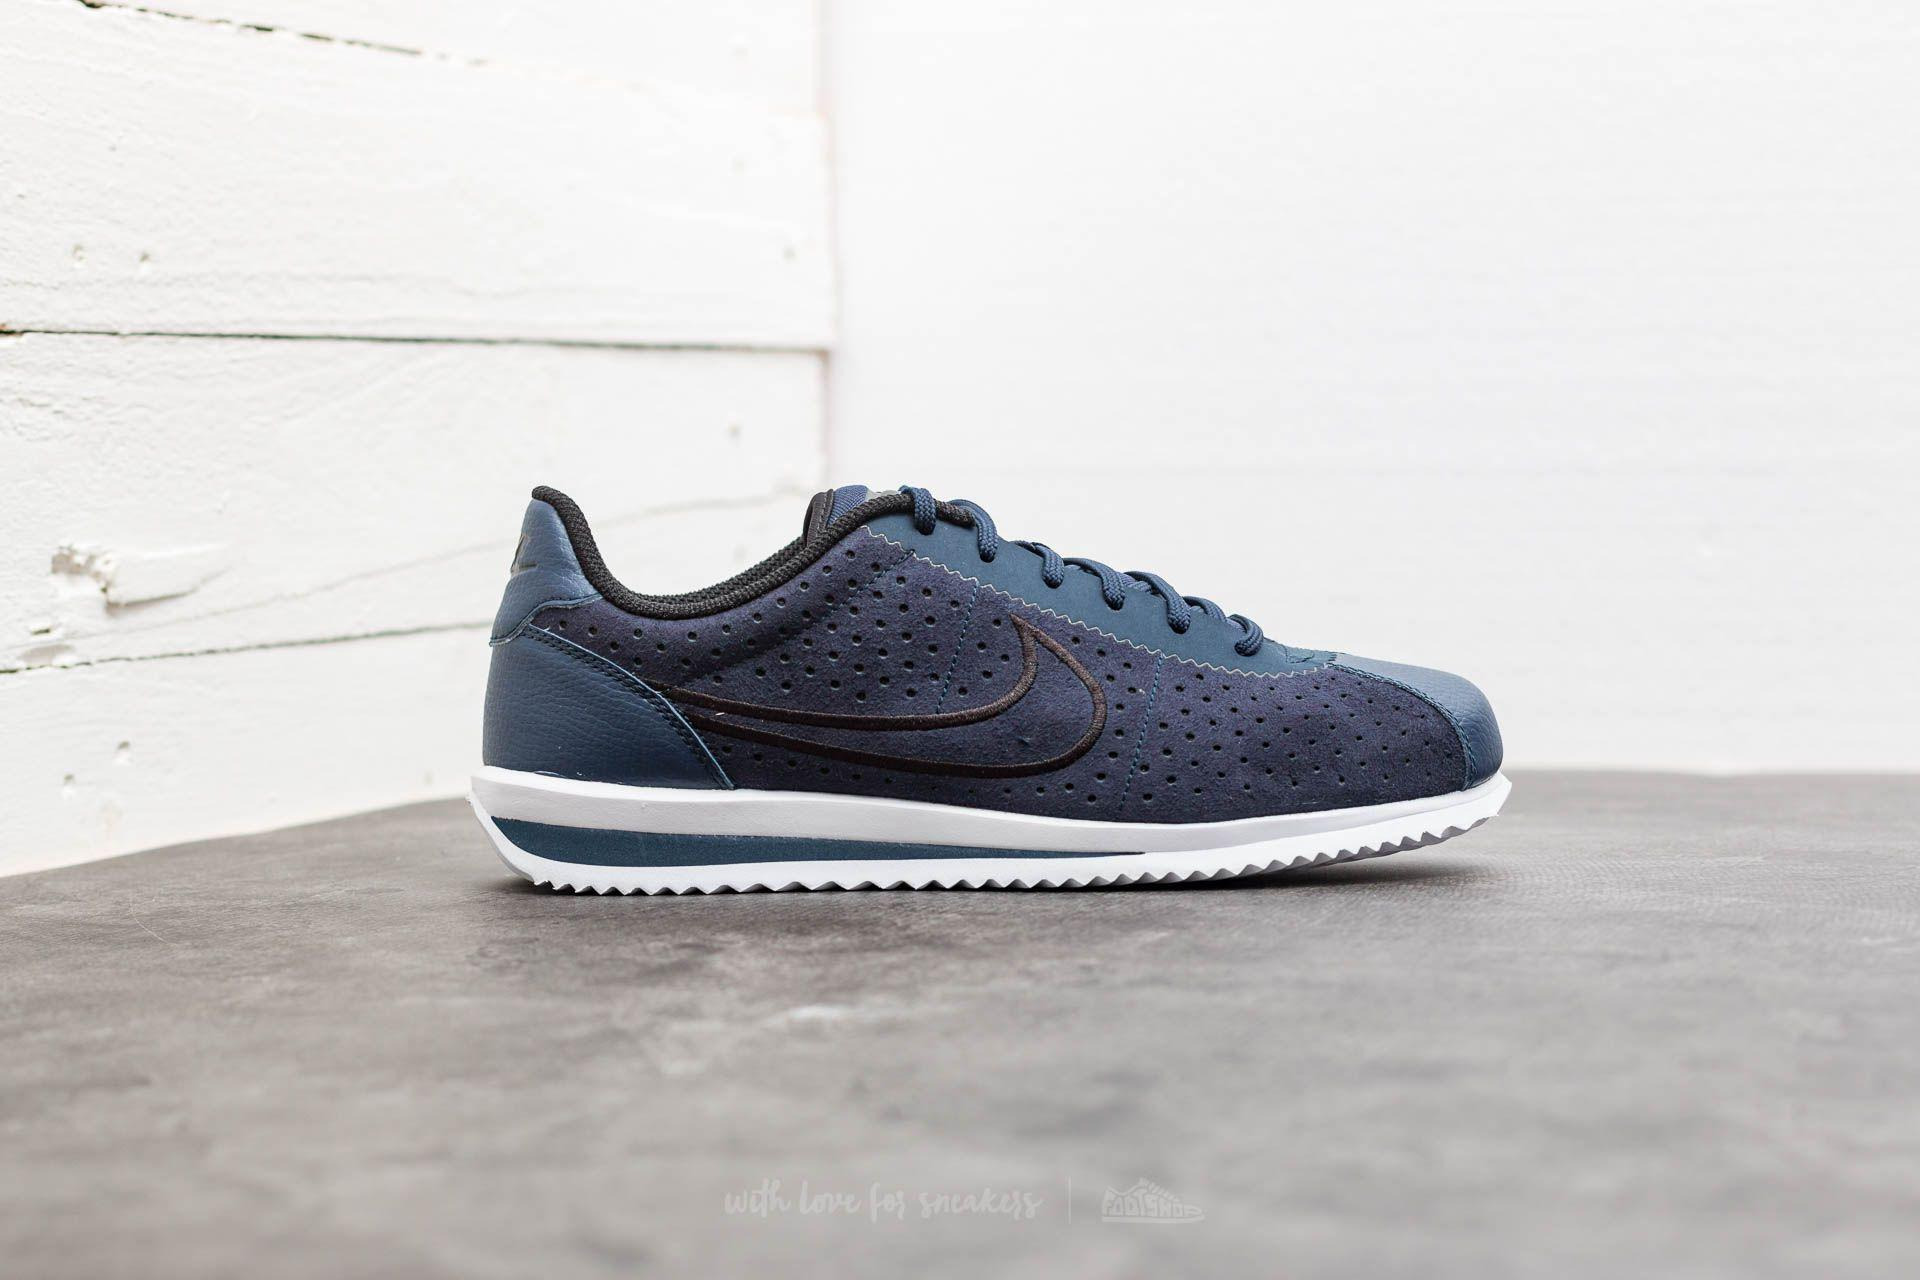 new arrivals 6fca2 a65fb Nike Cortez Ultra Moire 2 Obsidian  Black-white in Blue for Men - Lyst